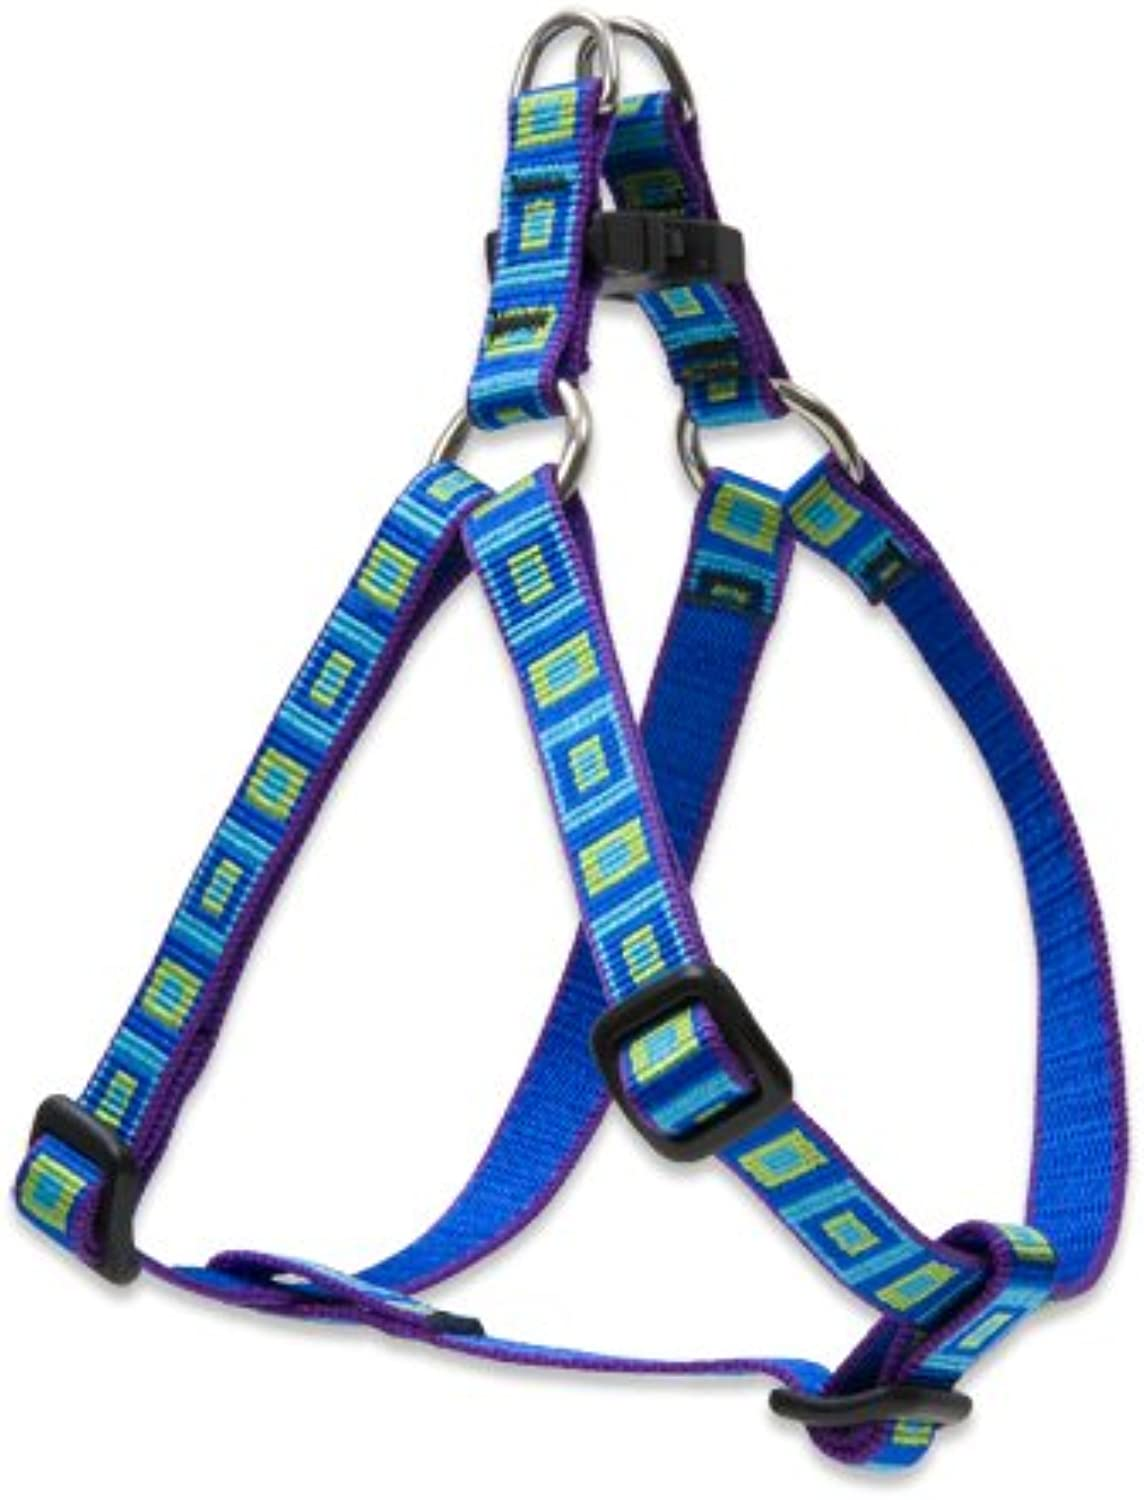 Lupine Step In Dog Harness 1 2Inch, 12Inch to 18Inch, Sea Glass